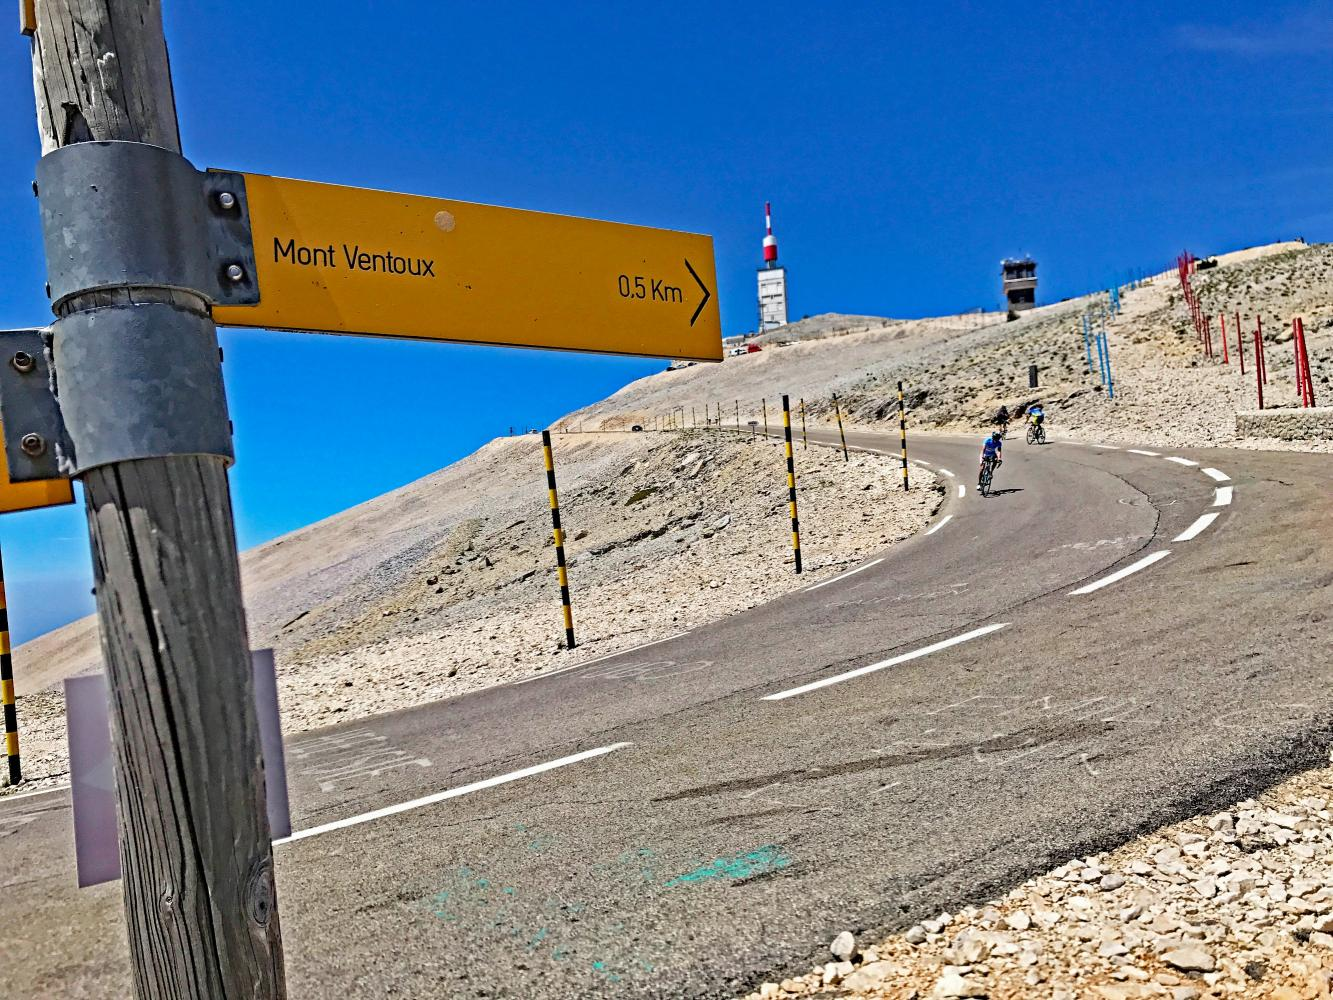 Tour de France 2021: Stage 11, France - PJAMM Cycling - Climb of the Week